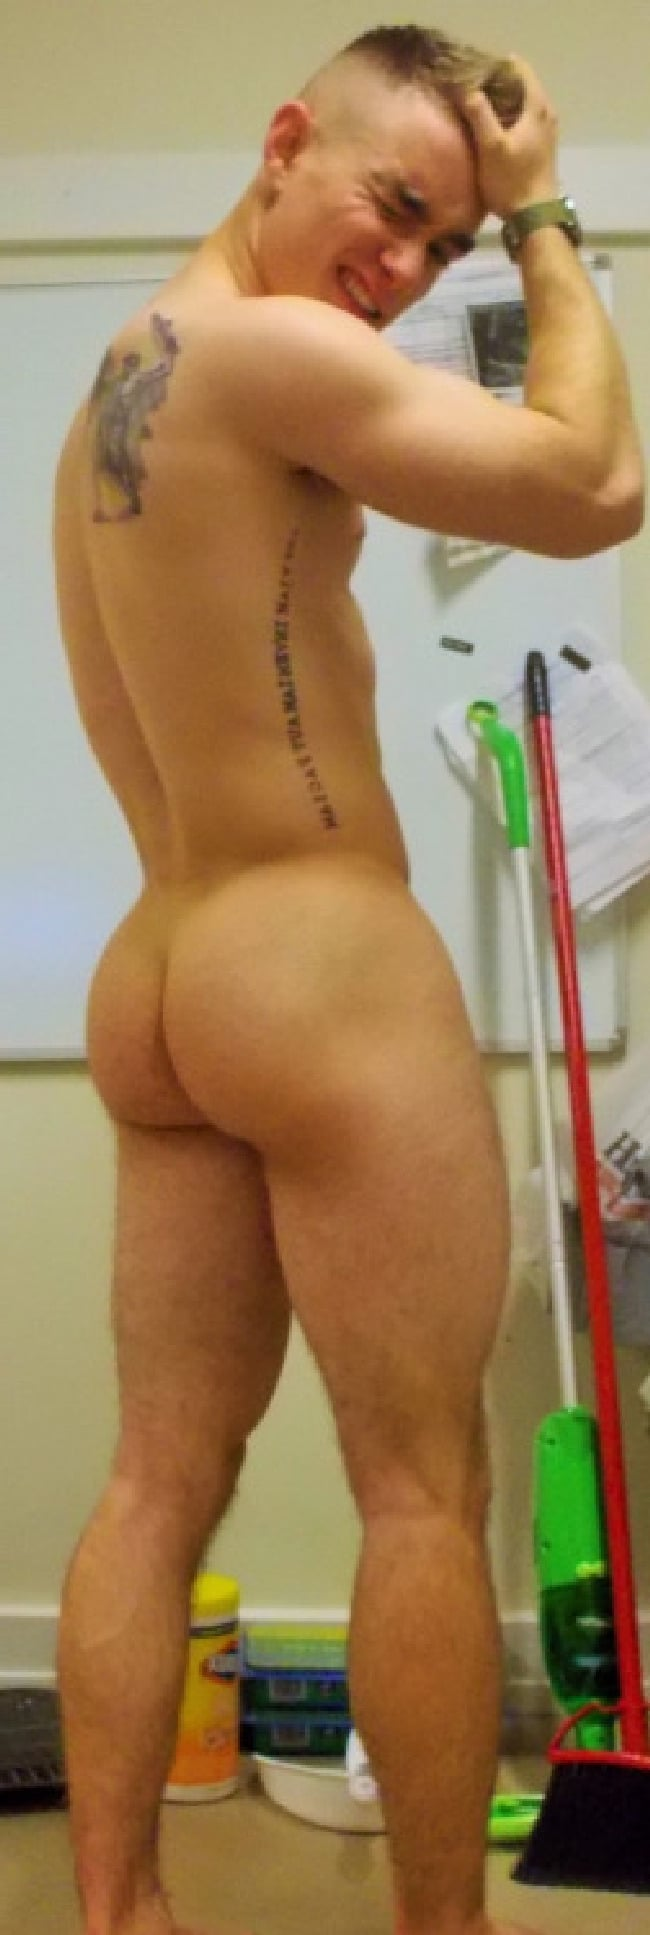 A Naked Guy Butt